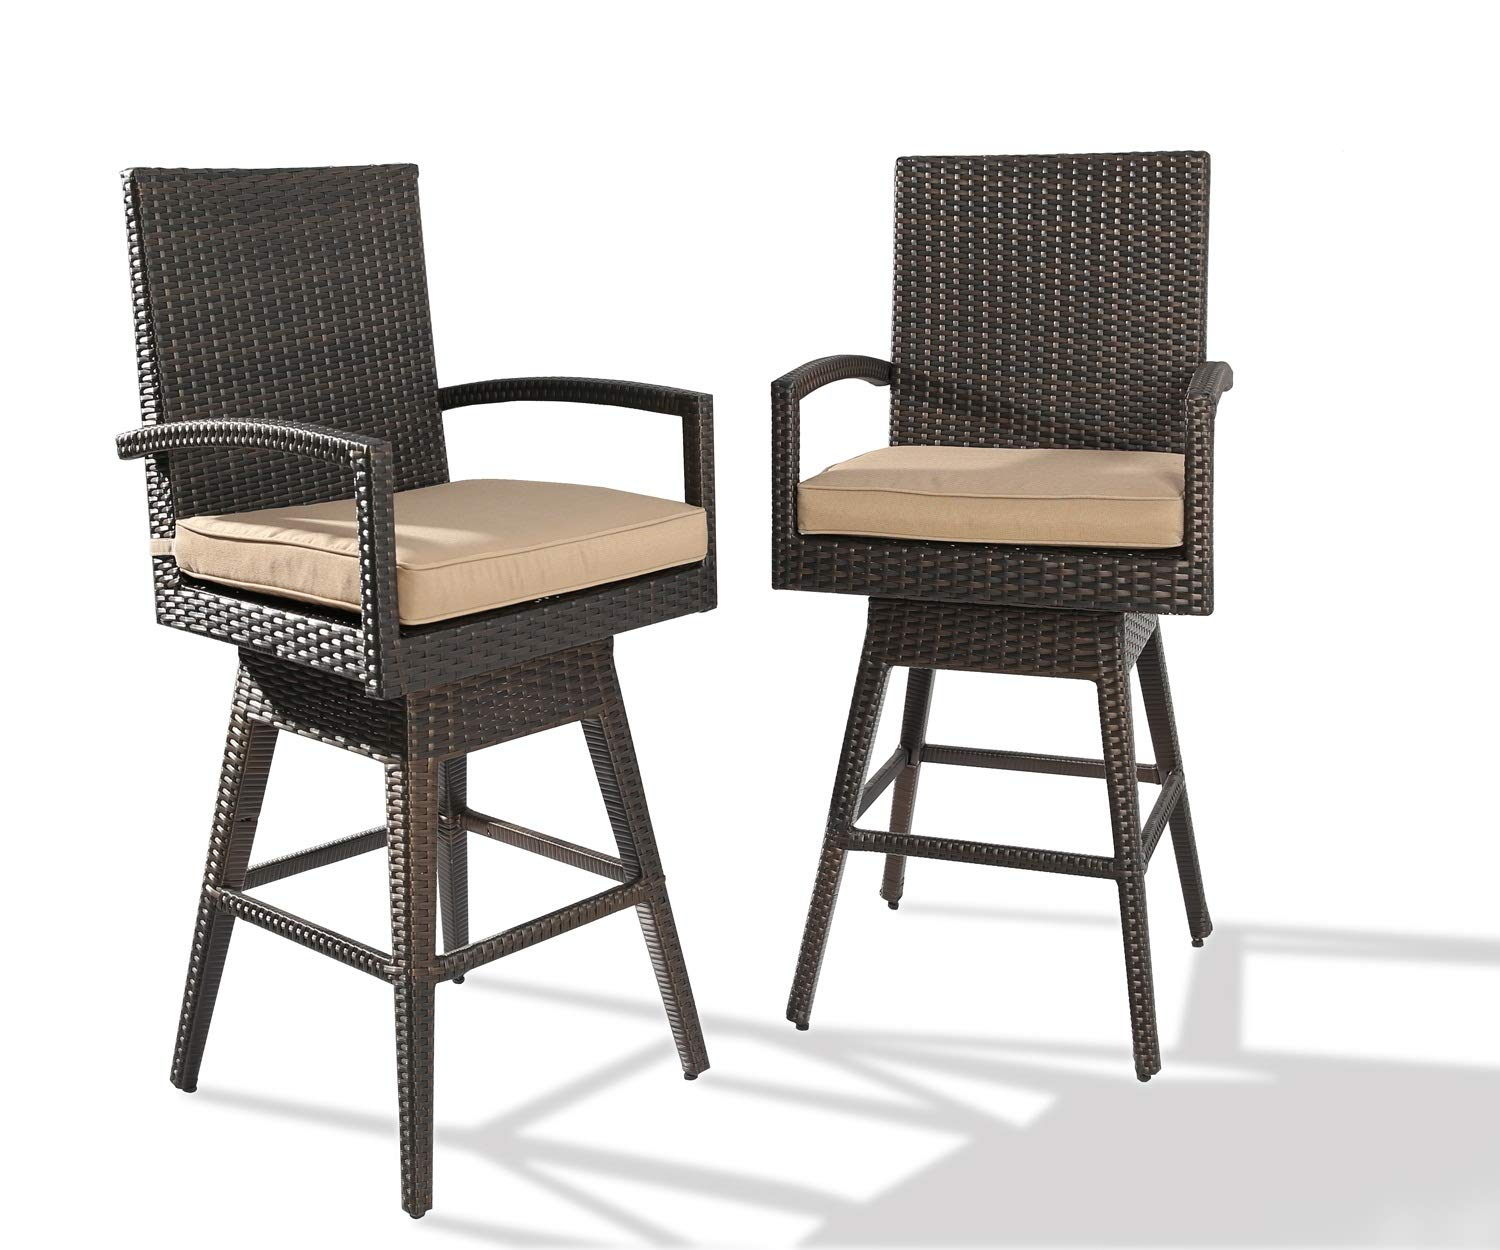 Amazon com ulax furniture 2pack outdoor patio furniture all weather brown wicker swivel bar stool with cushion kitchen dining